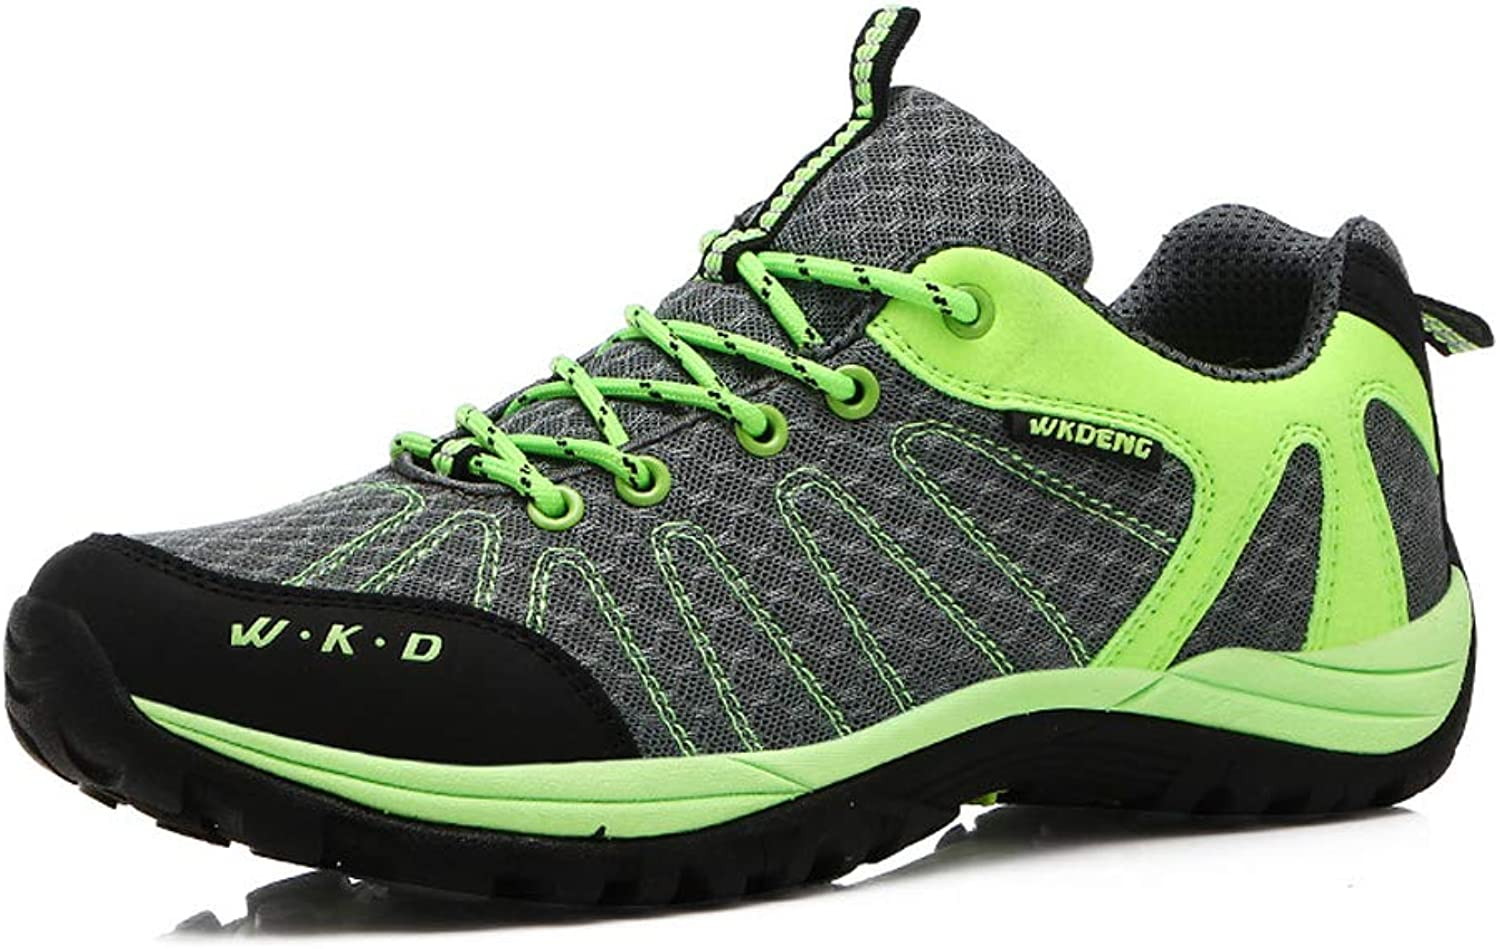 FFSH Sports shoes Non-Slip Outdoor Leisure Sports shoes Quick-Drying Cross-Country Running shoes-green-38